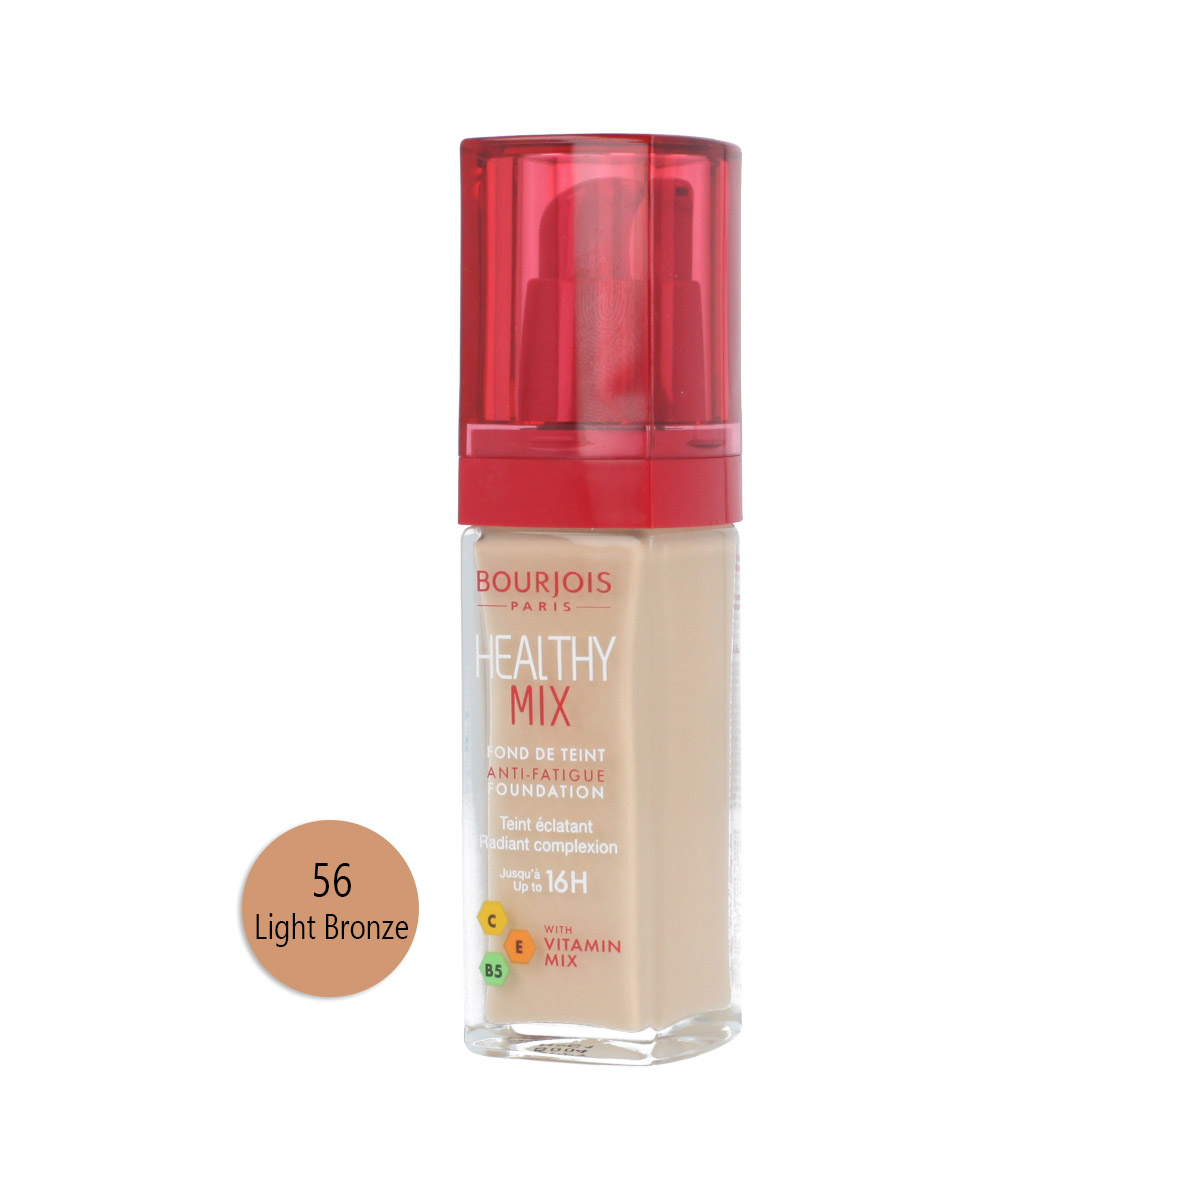 Bourjois Paris Healthy Mix Anti-Fatigue Foundation (56 Light Bronze) 30 ml 13852